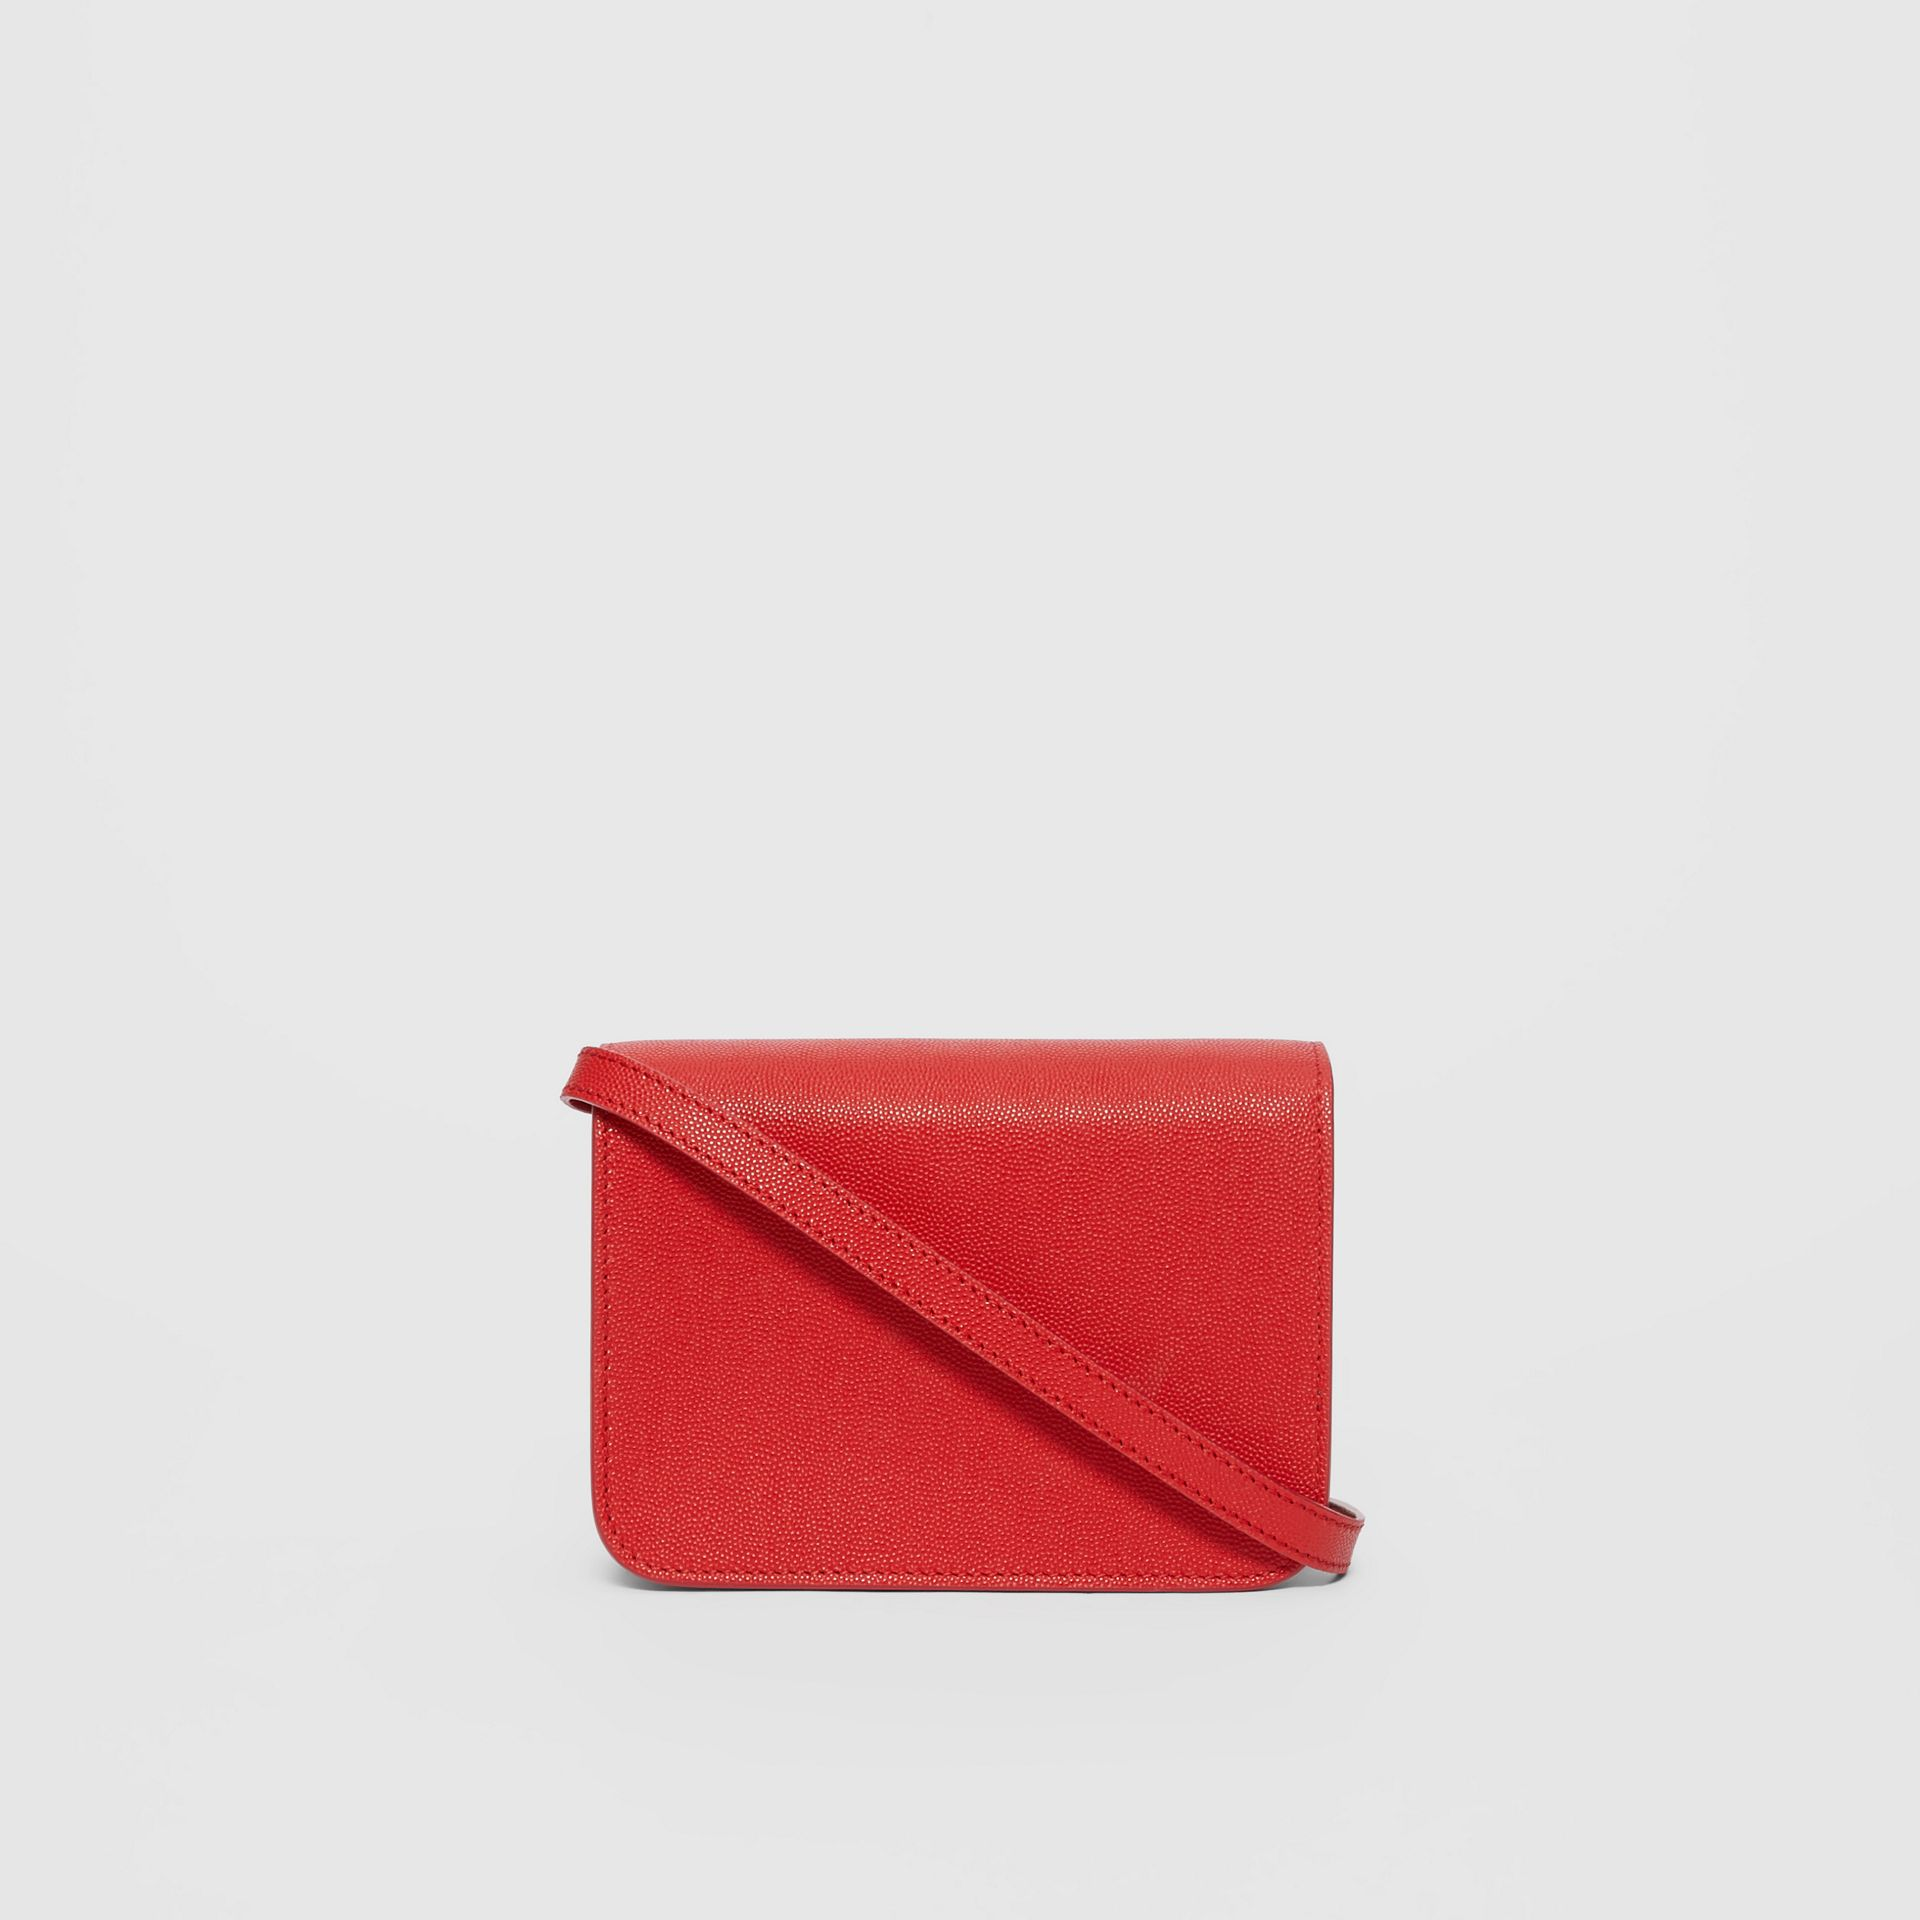 Mini Grainy Leather TB Bag in Bright Red - Women | Burberry United States - gallery image 5